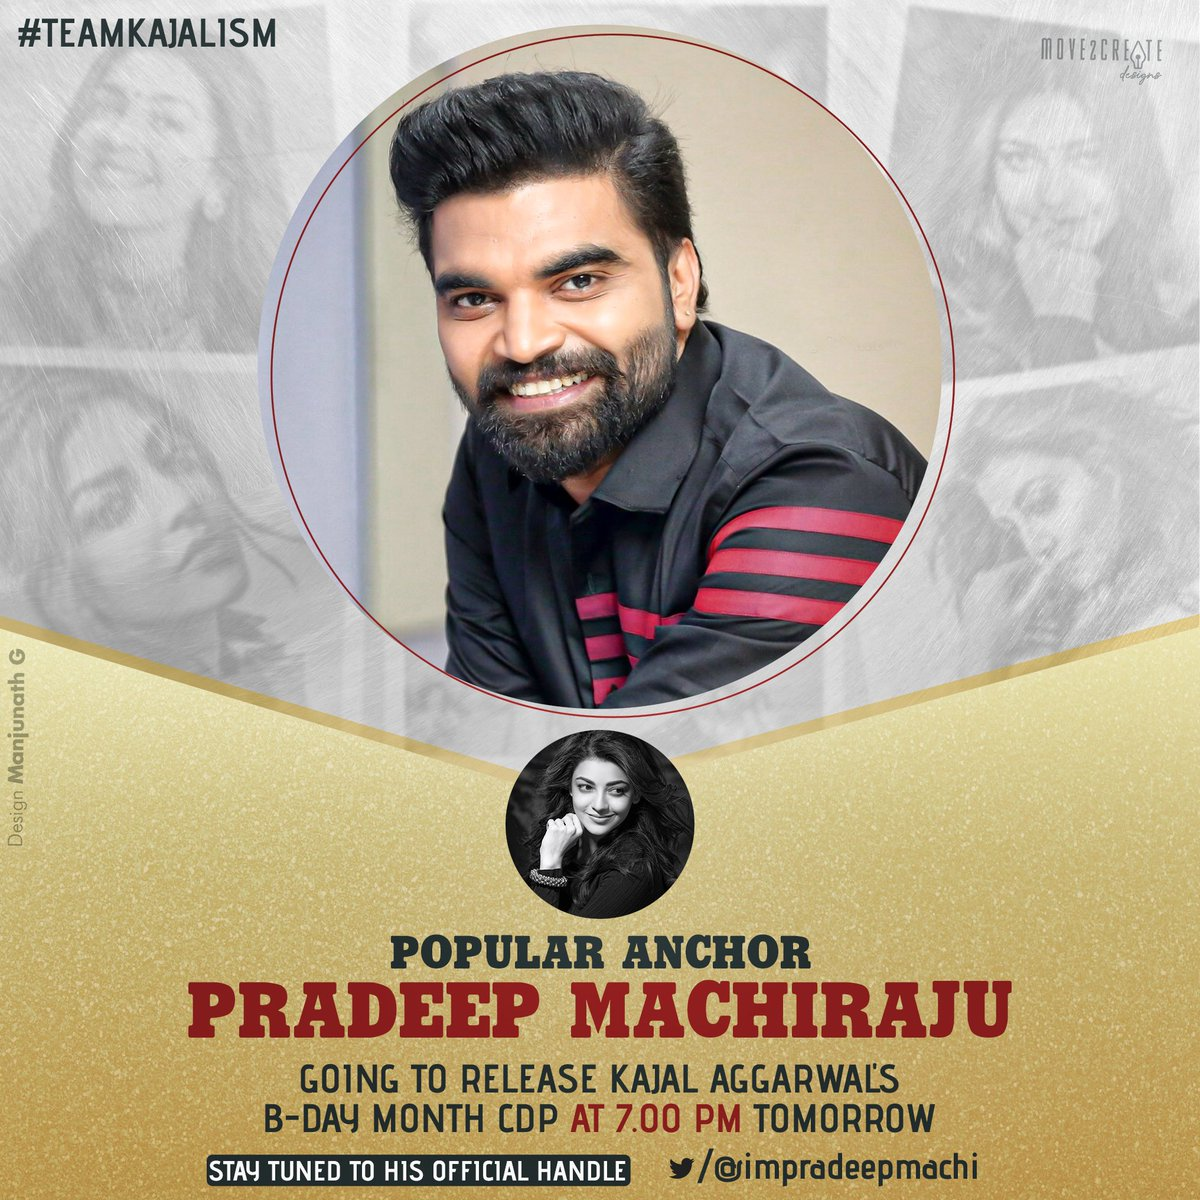 Big Breaking newsTollywood  Most popular anchor @impradeepmachi going to avail Birthday Month CDP of our  Gorergeous Diva @MsKajalAggarwal  Tomorrow at 7:00Pm ! Get ready guys for the huge birthday trend. Gonna create history pic.twitter.com/SKo3zXx16Q